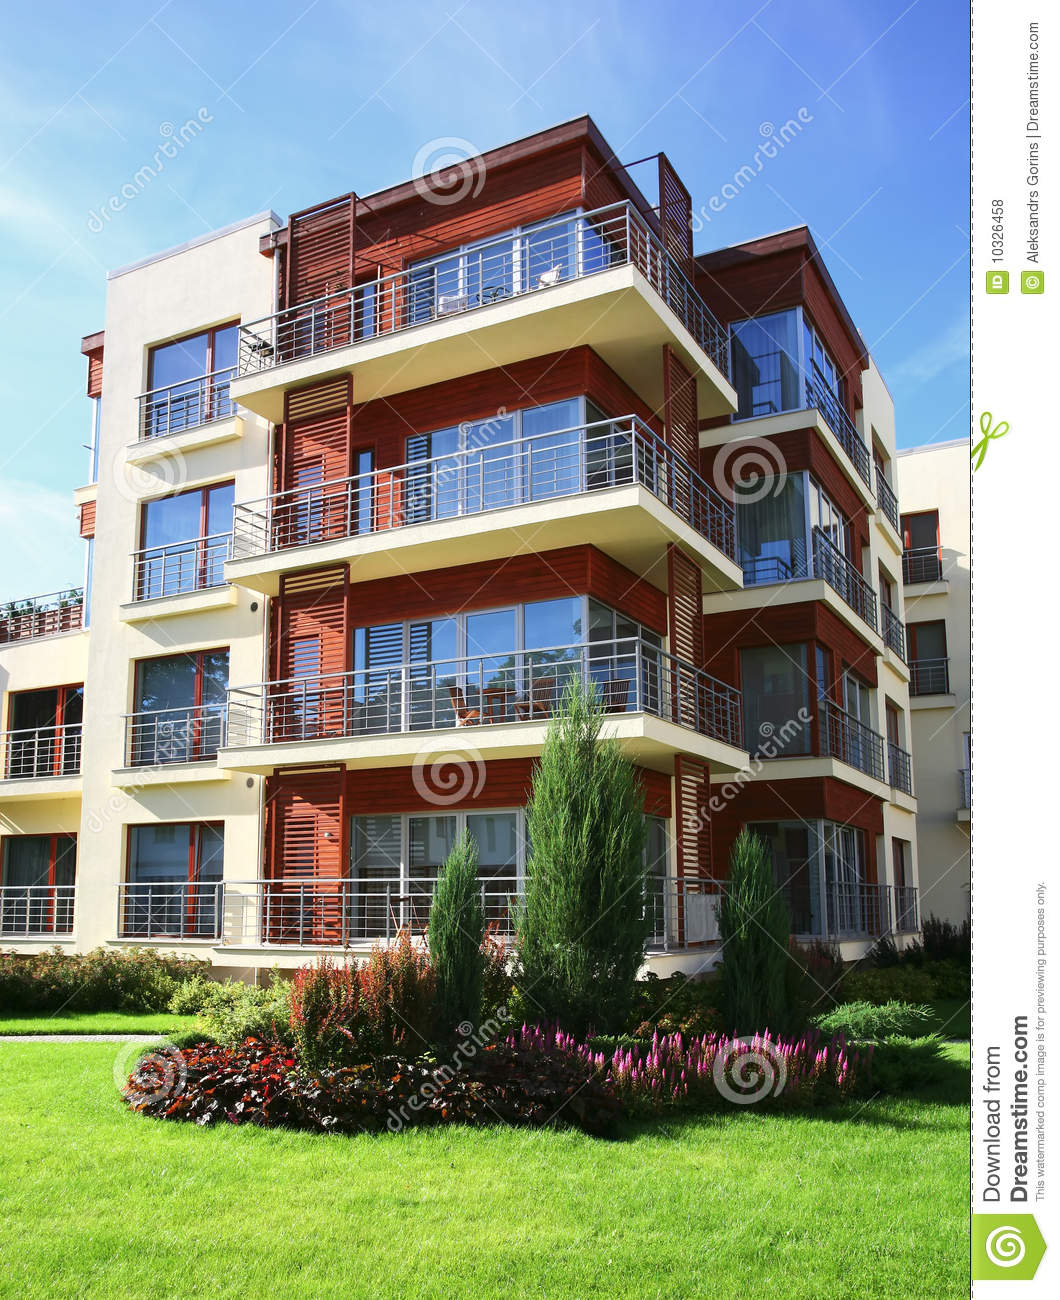 Modern Apartment: Modern Apartments Stock Photo. Image Of Architecture